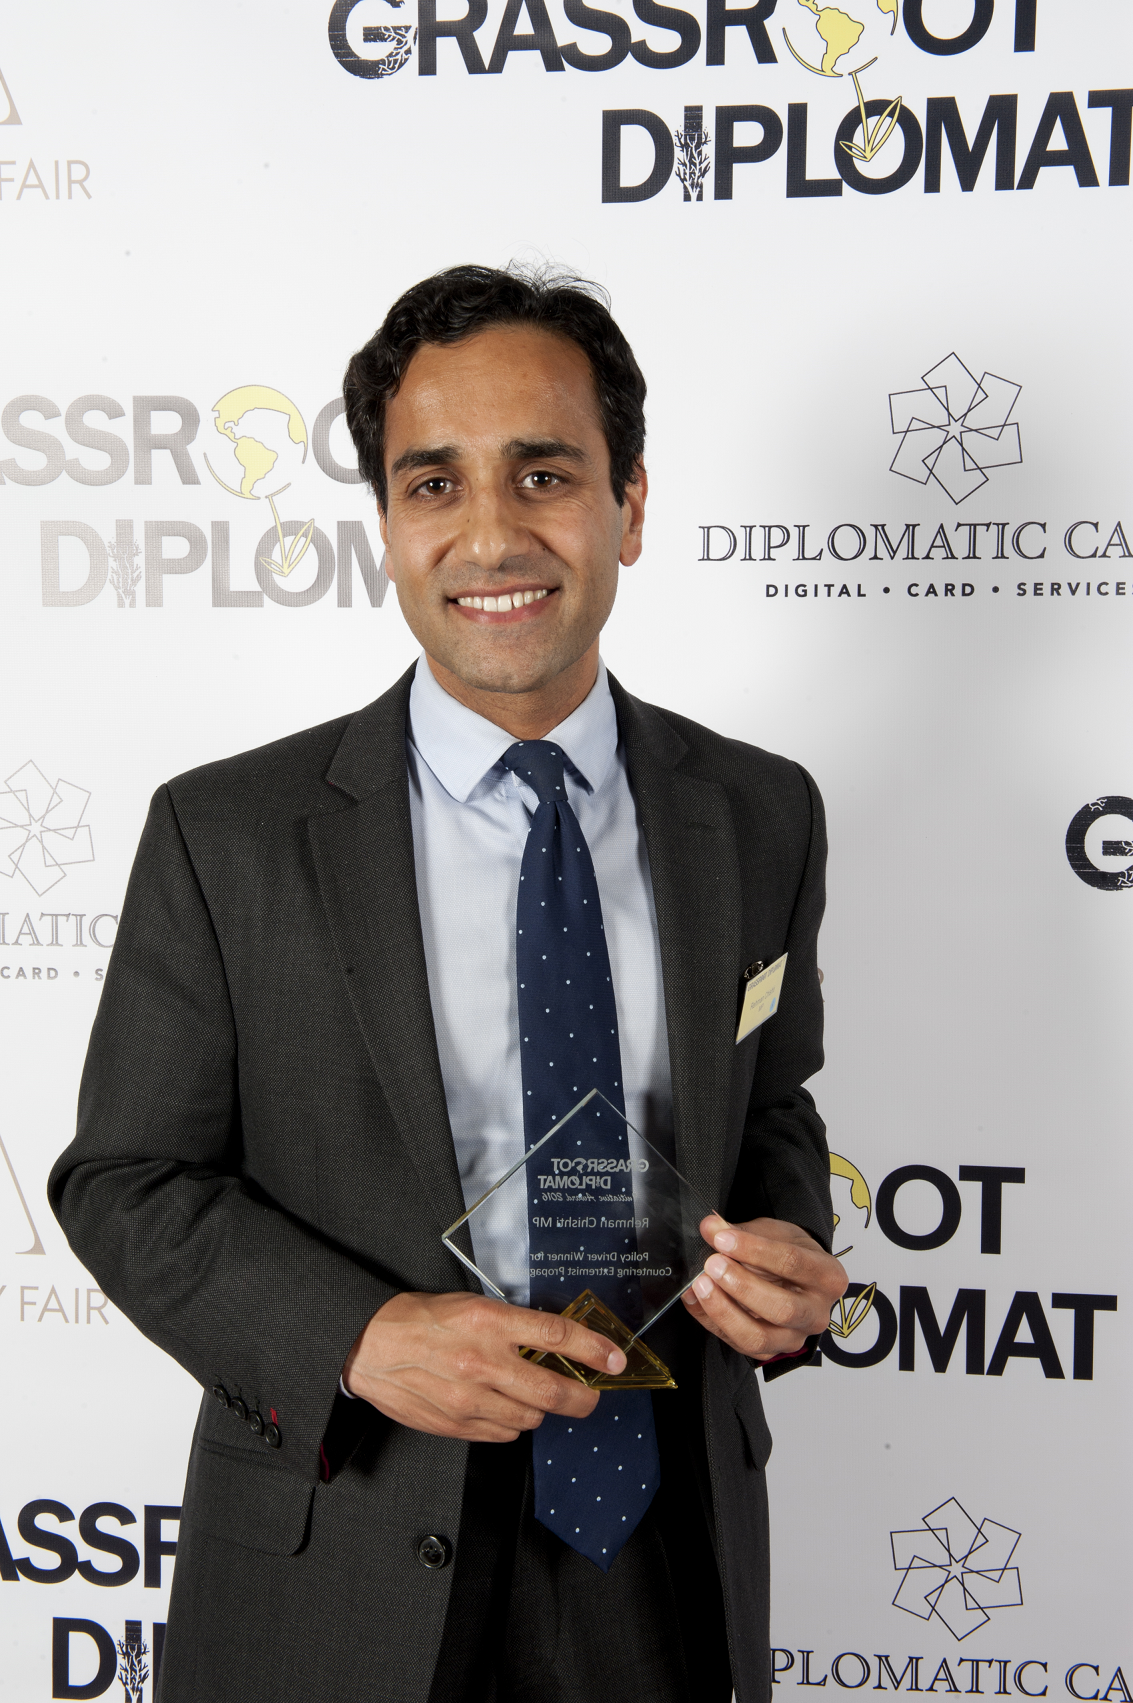 "Rehman Chishti MP  - GILLINGHAM AND RAINHAM, CONSERVATIVEPOLICY DRIVER WINNER: COUNTERING EXTREMISM PROPAGANDA2016Since February 2015, Mr Chishti ran a highly successful high profile campaign to convince the Government and the media to refer to the so called Islamic State as ""Daesh"". The use of the titles Islamic State, ISIL and ISIS gives legitimacy to a terrorist organisation that is neither Islamic nor a state, distorting the peaceful religion of Islam for its own violent and extremist ends. Backed by 120 MPs, Mr Chishti submitted a letter to the Prime Minister and to the BBC calling for this change. In December 2015, after several months of campaigning, the Prime Minister publicly urged the government and media to fully adopt Daesh into their lexicon to help reduce public fear and paranoia against Muslims and the religion itself on a global scale."